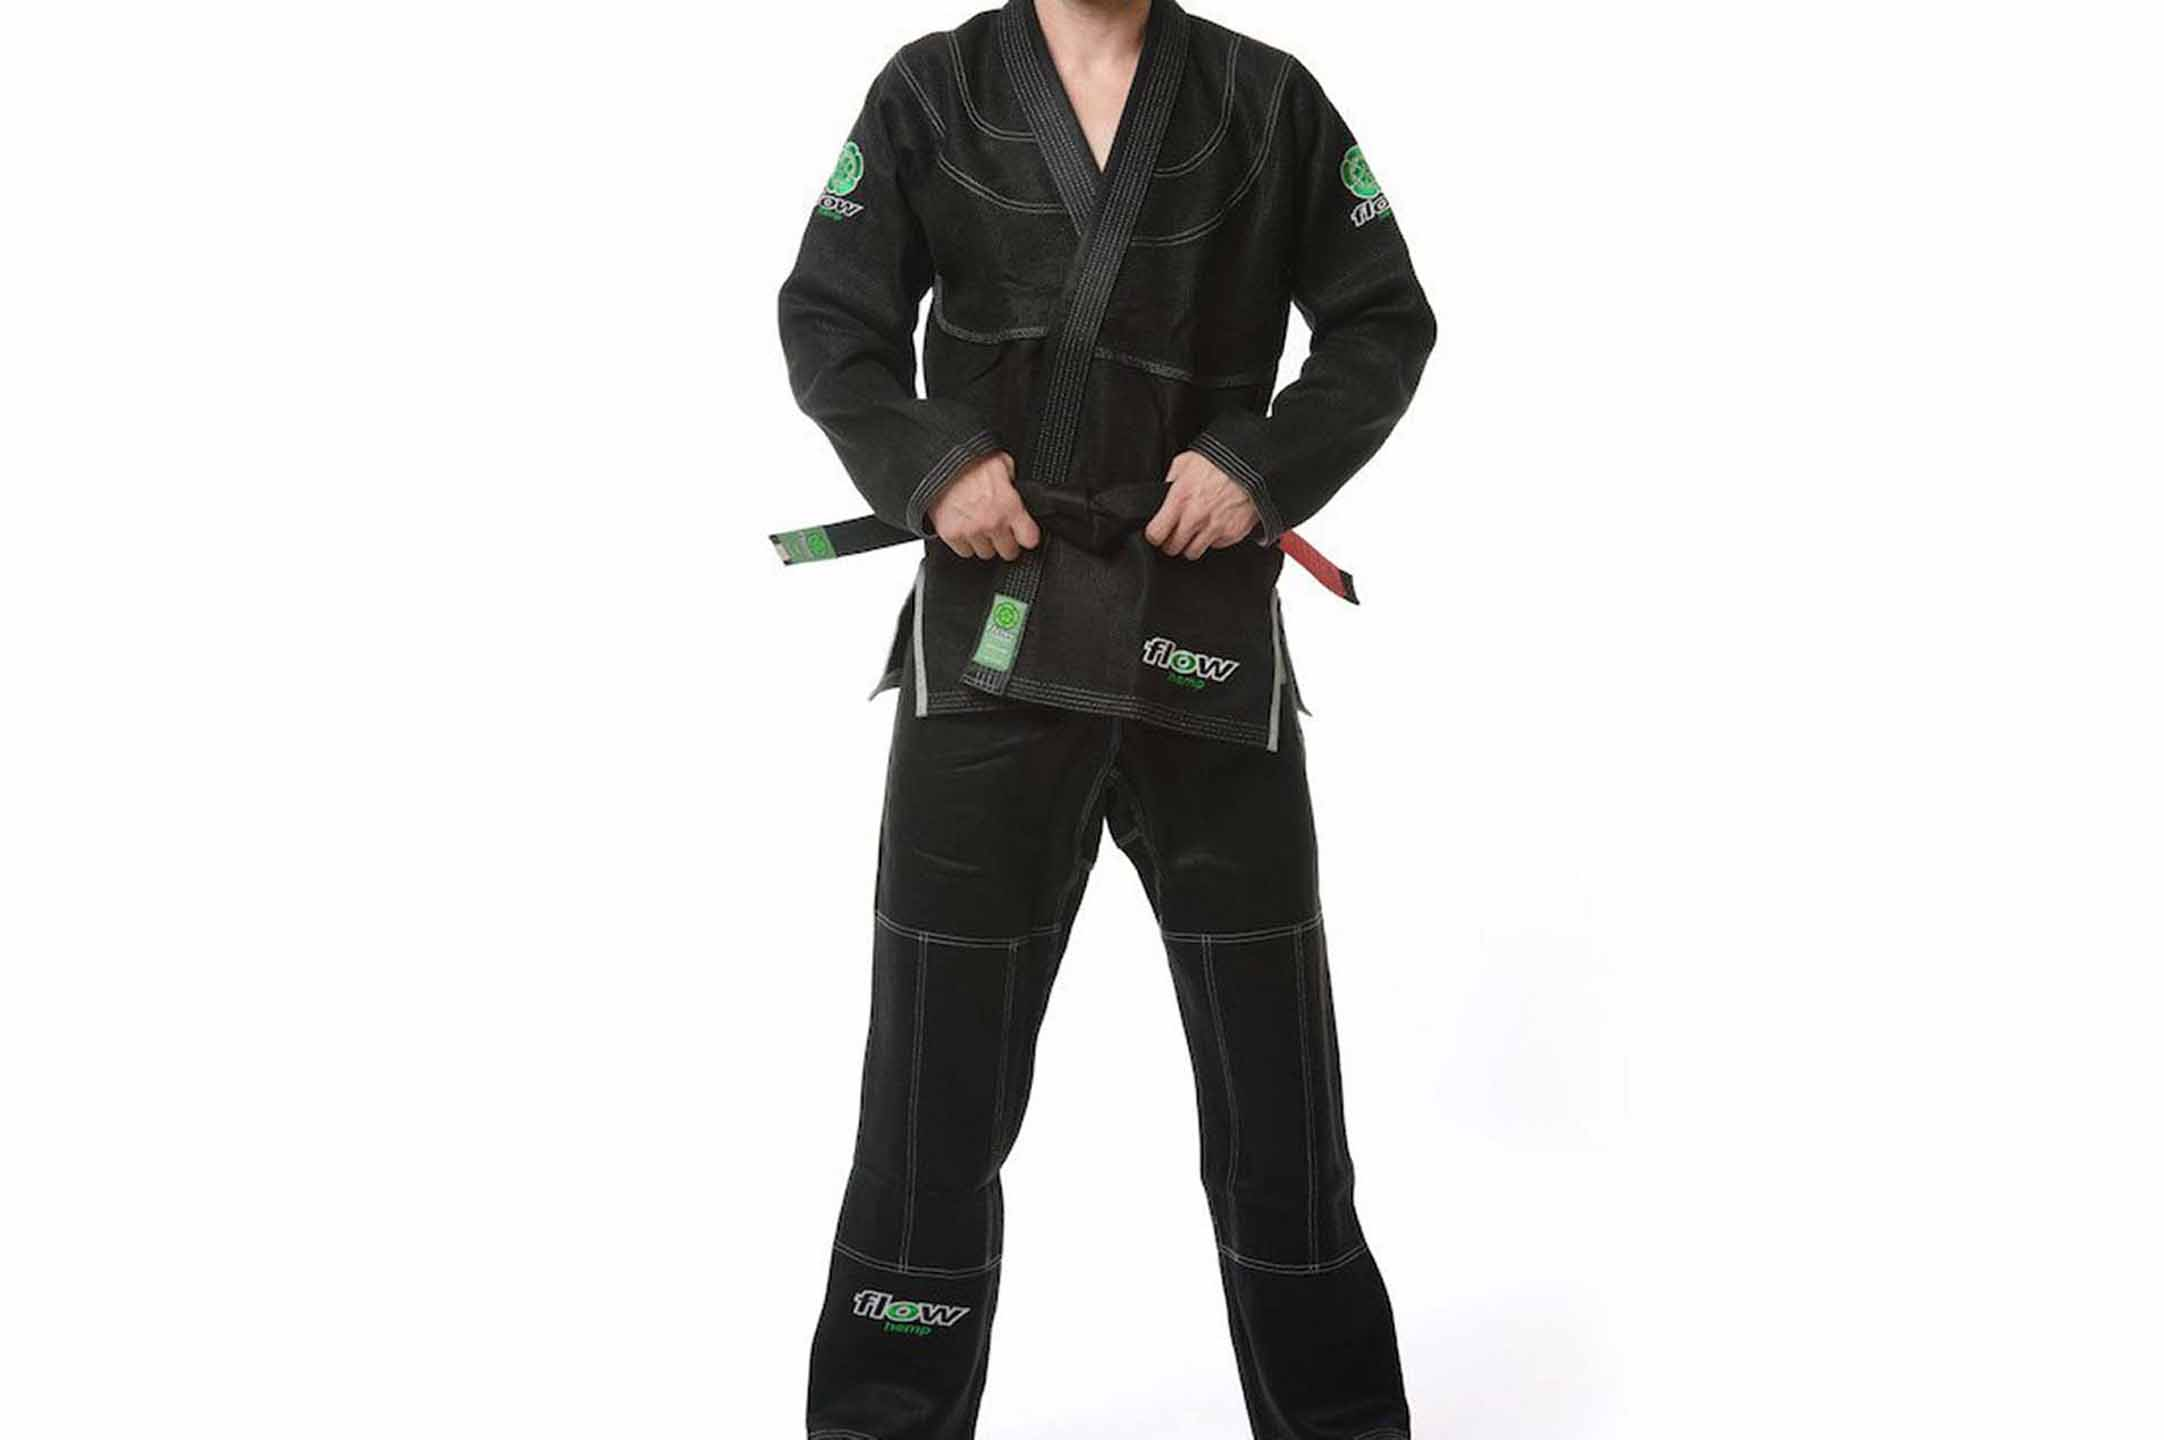 flow kimonos review 2164 x 1440